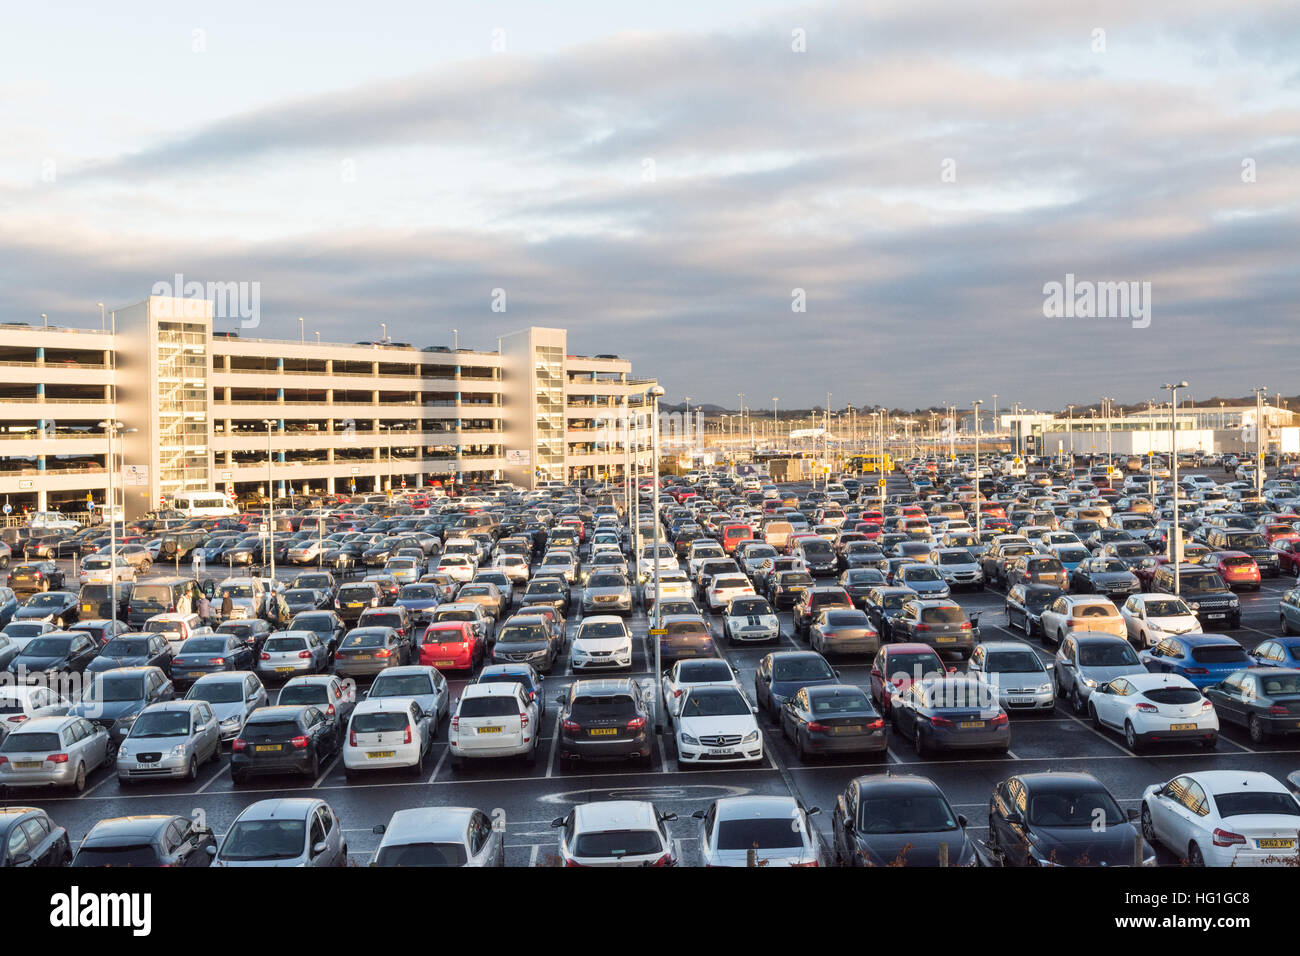 Airport Parking Stock Photos Airport Parking Stock Images Alamy